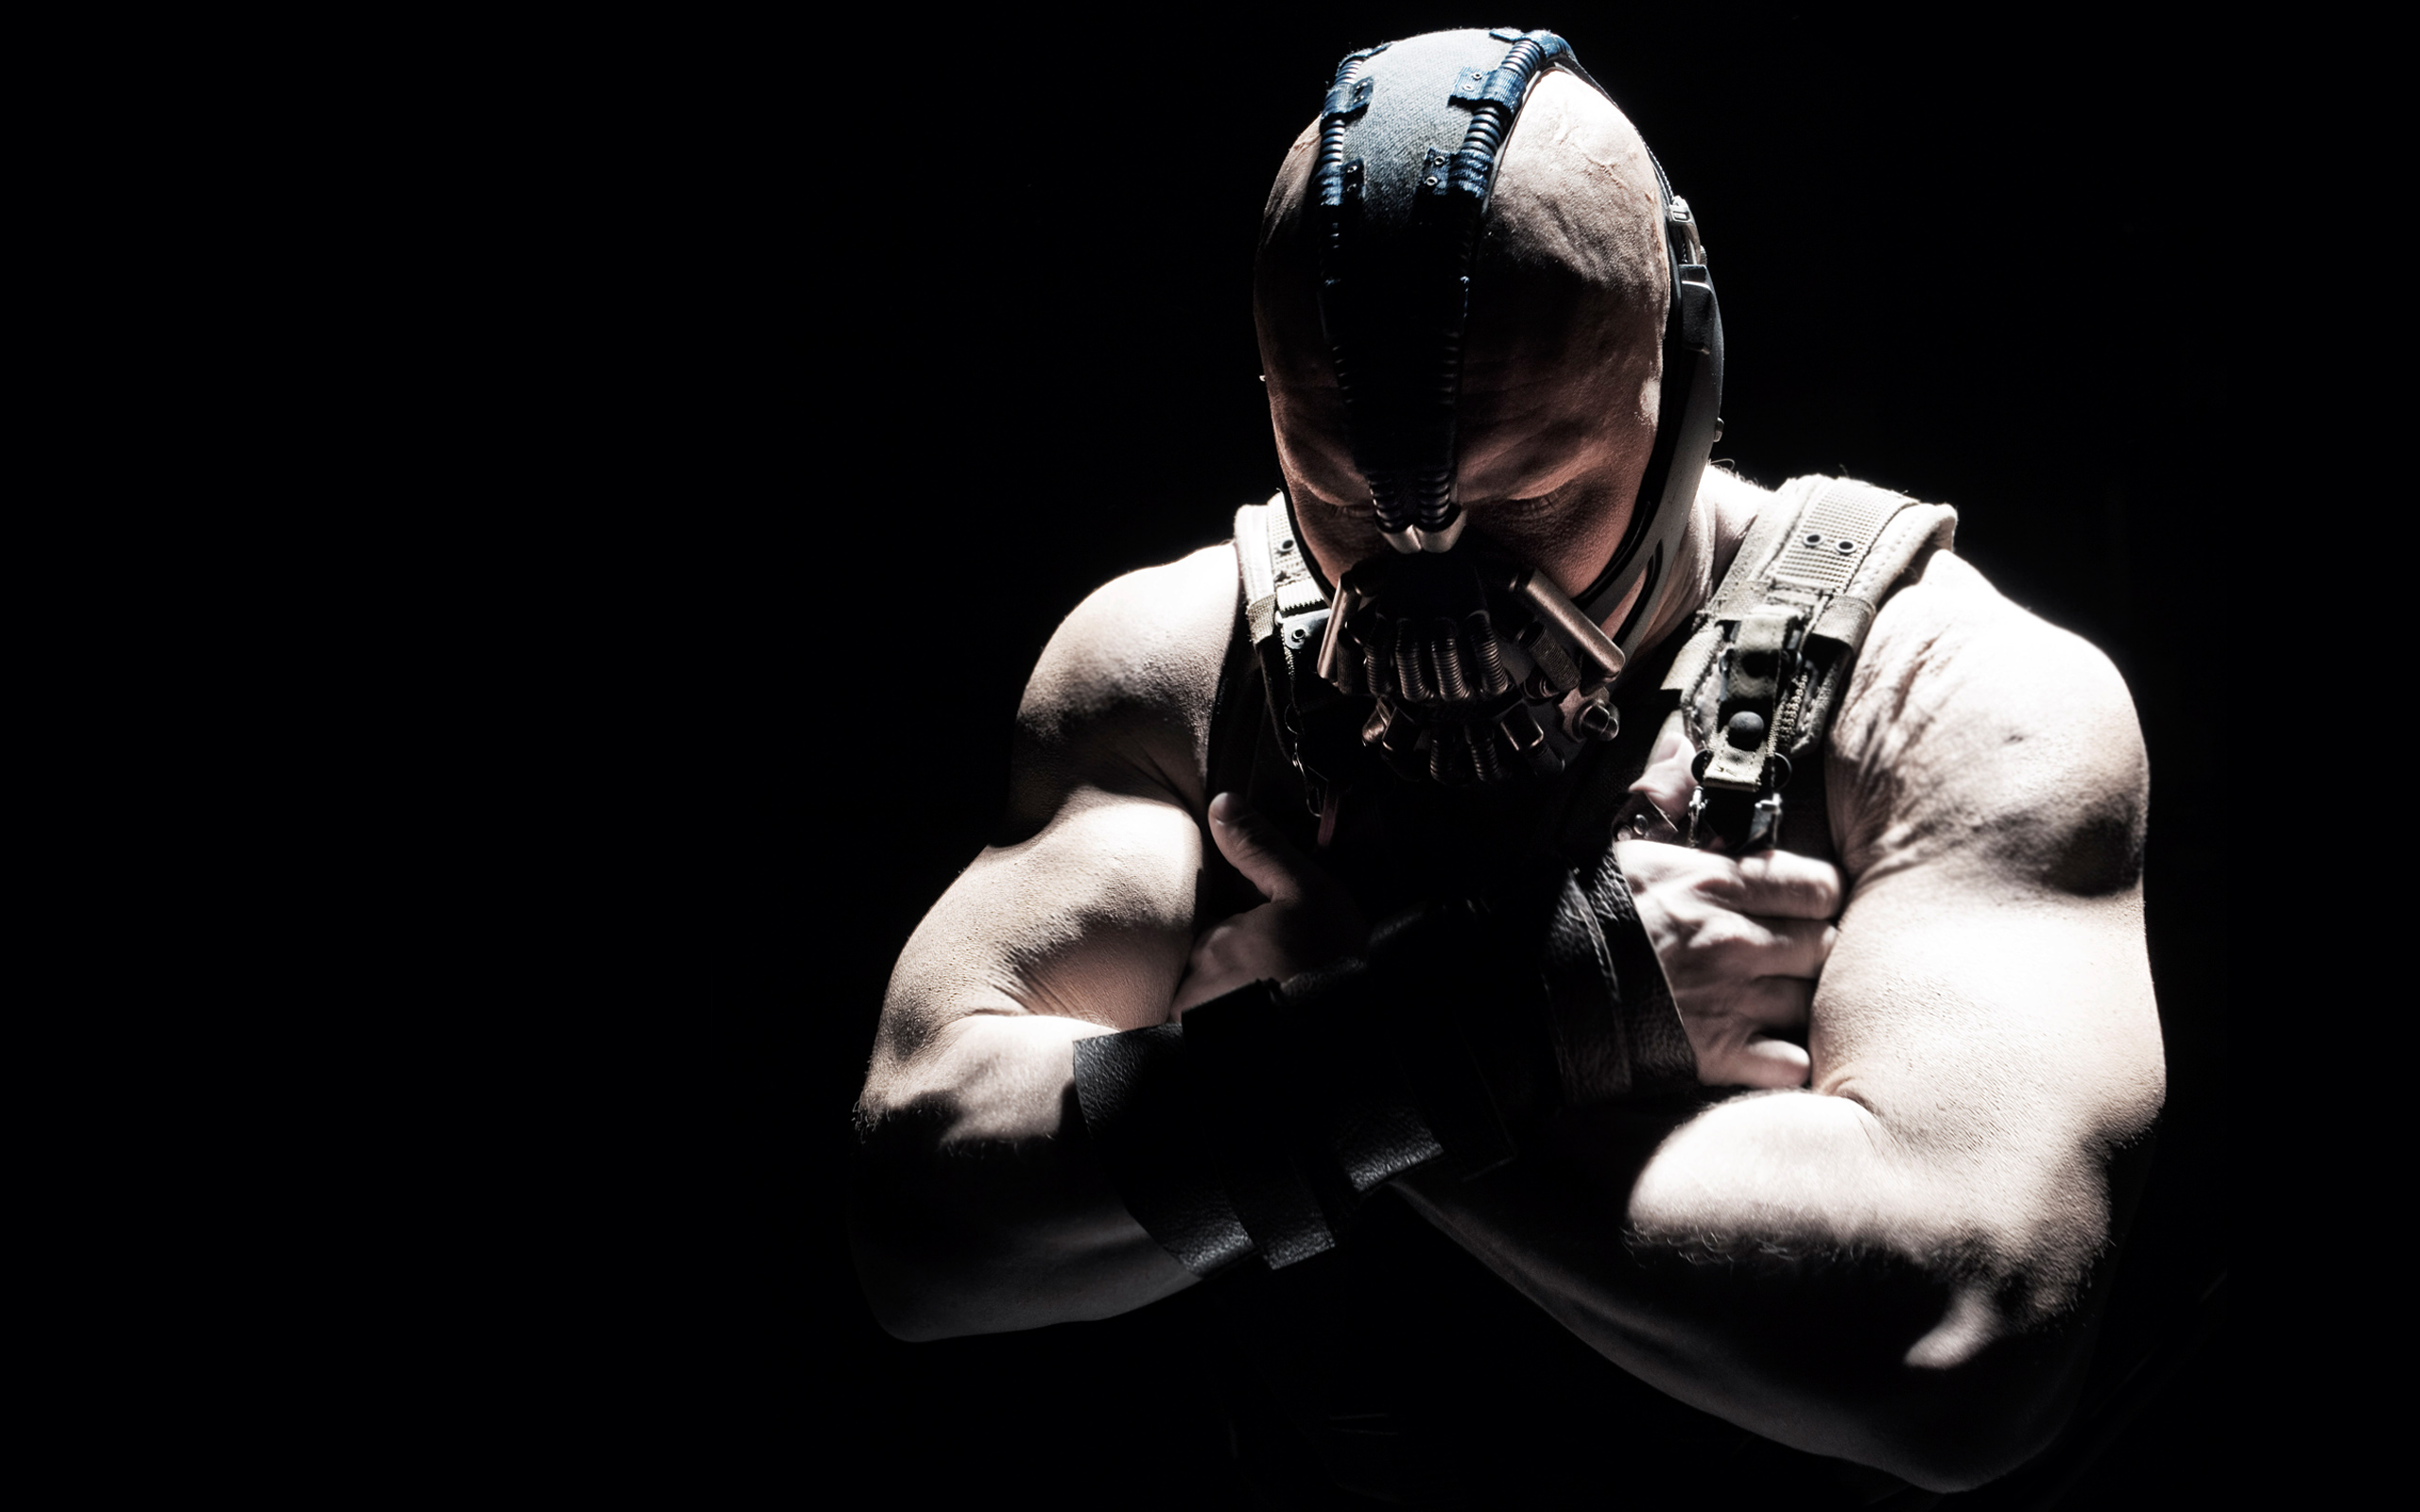 bane images tom hardy as bane in 'the dark knight rises' (hq) hd